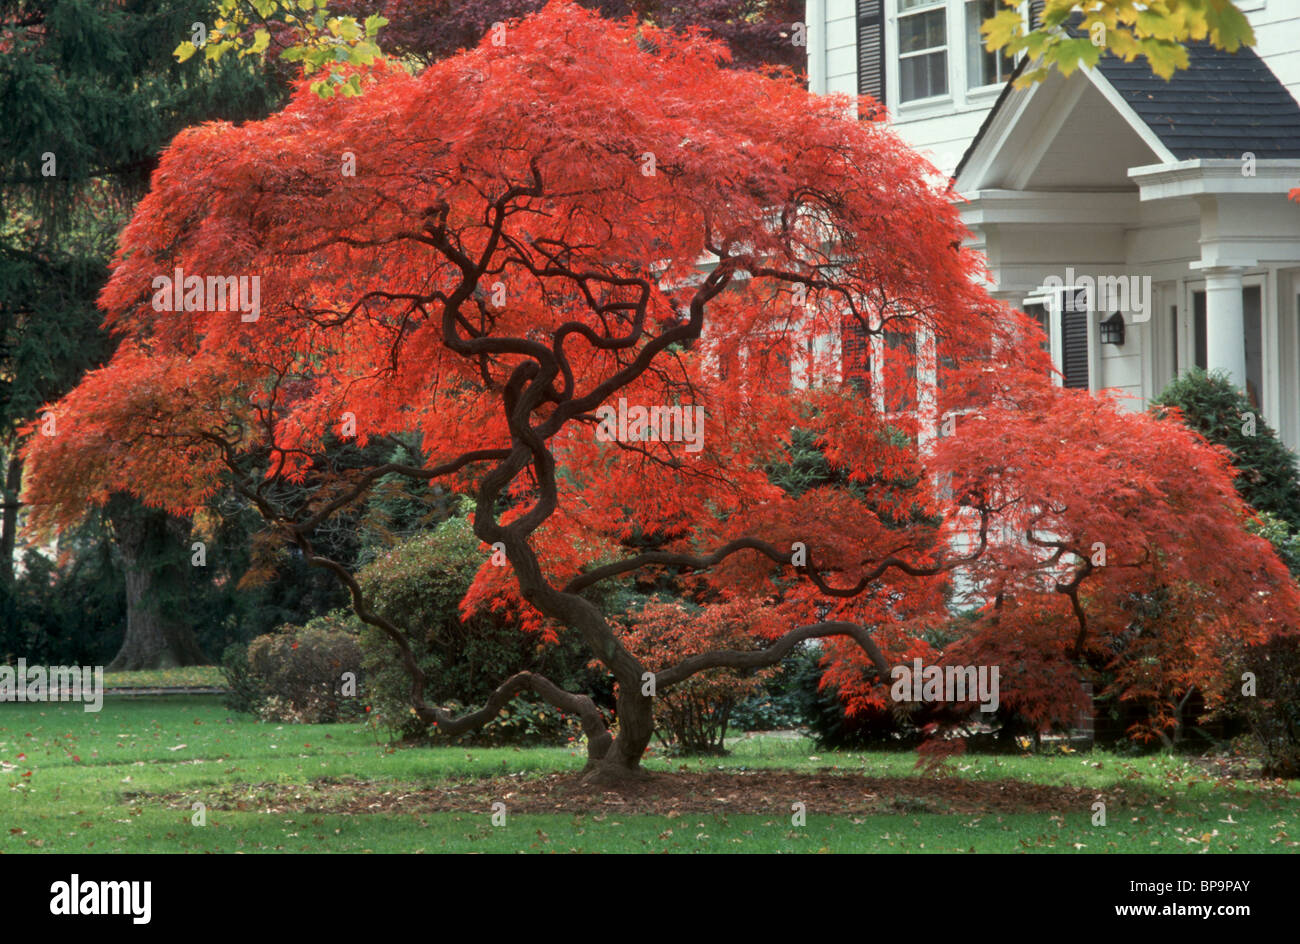 Fall Foliage Japanese Maple Tree In Blazing Red Color